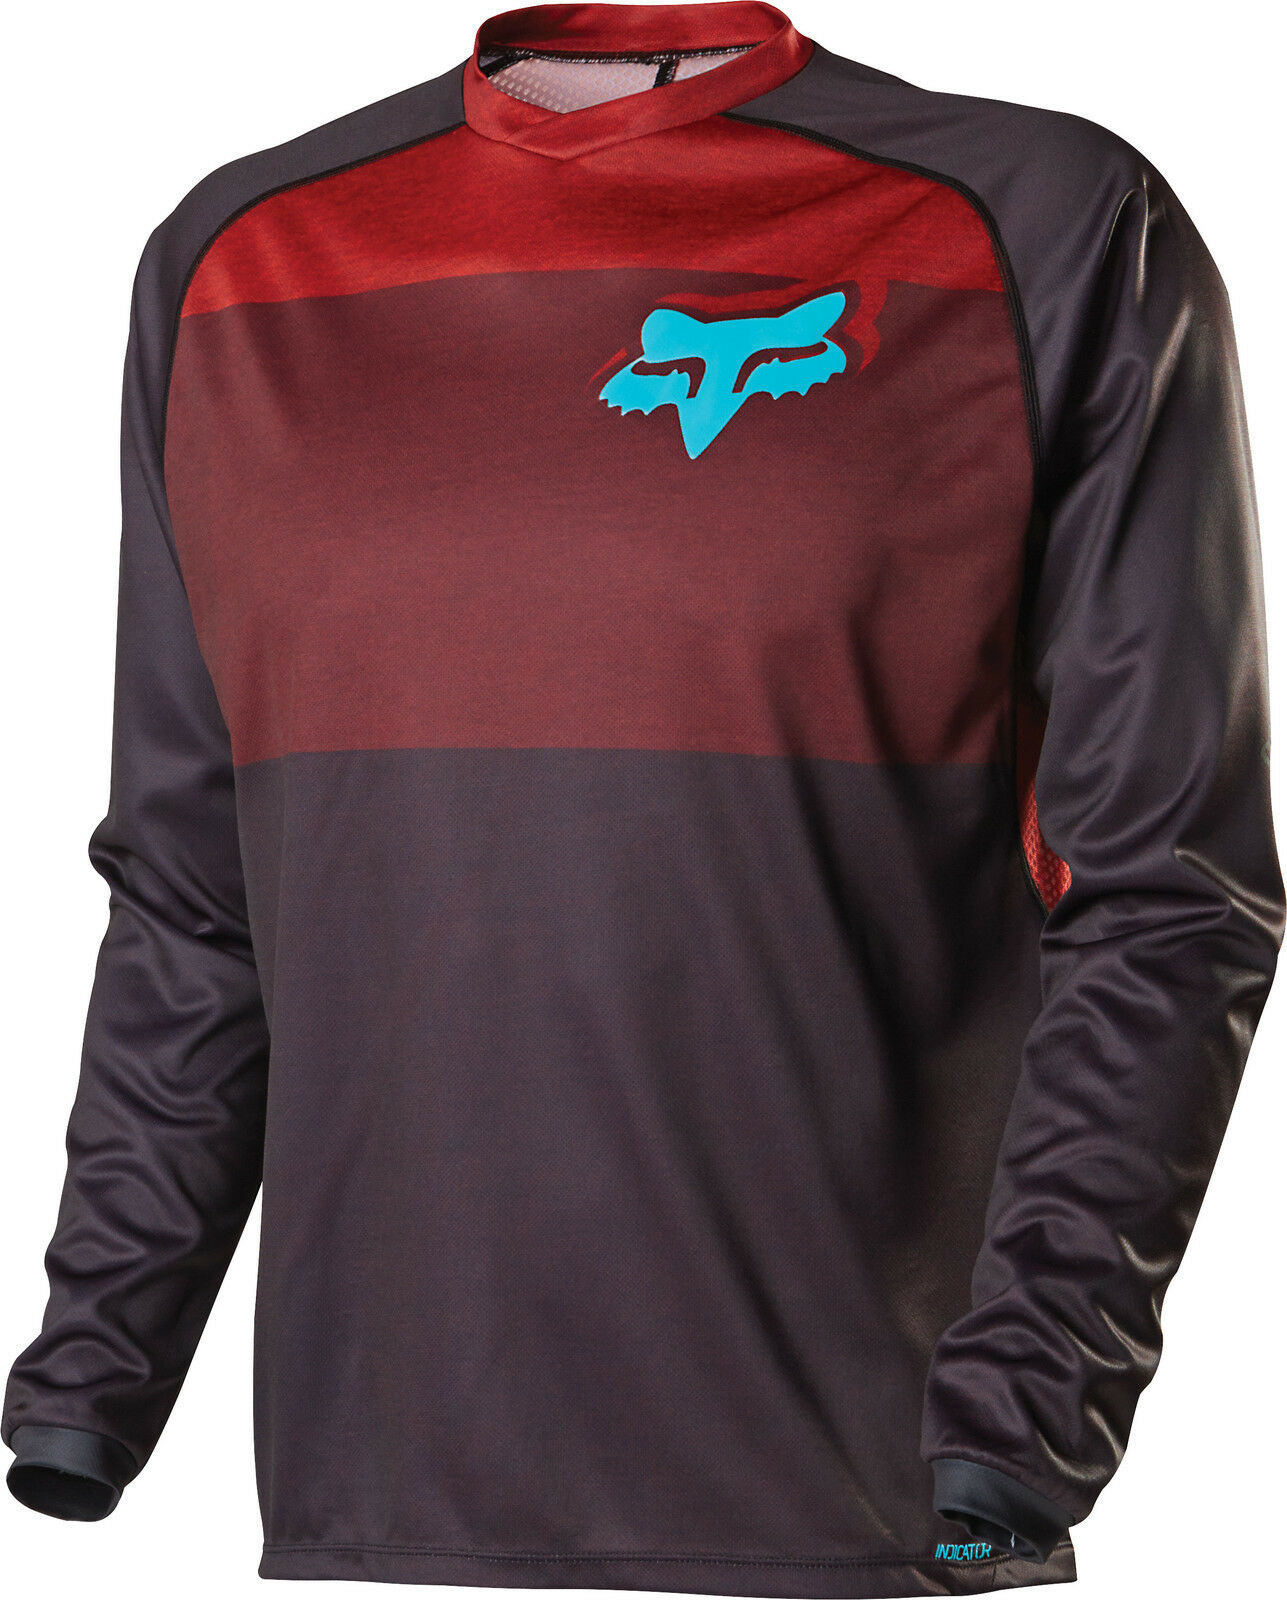 Fox Racing '15 Indicator L S Long Sleeve Jersey Red